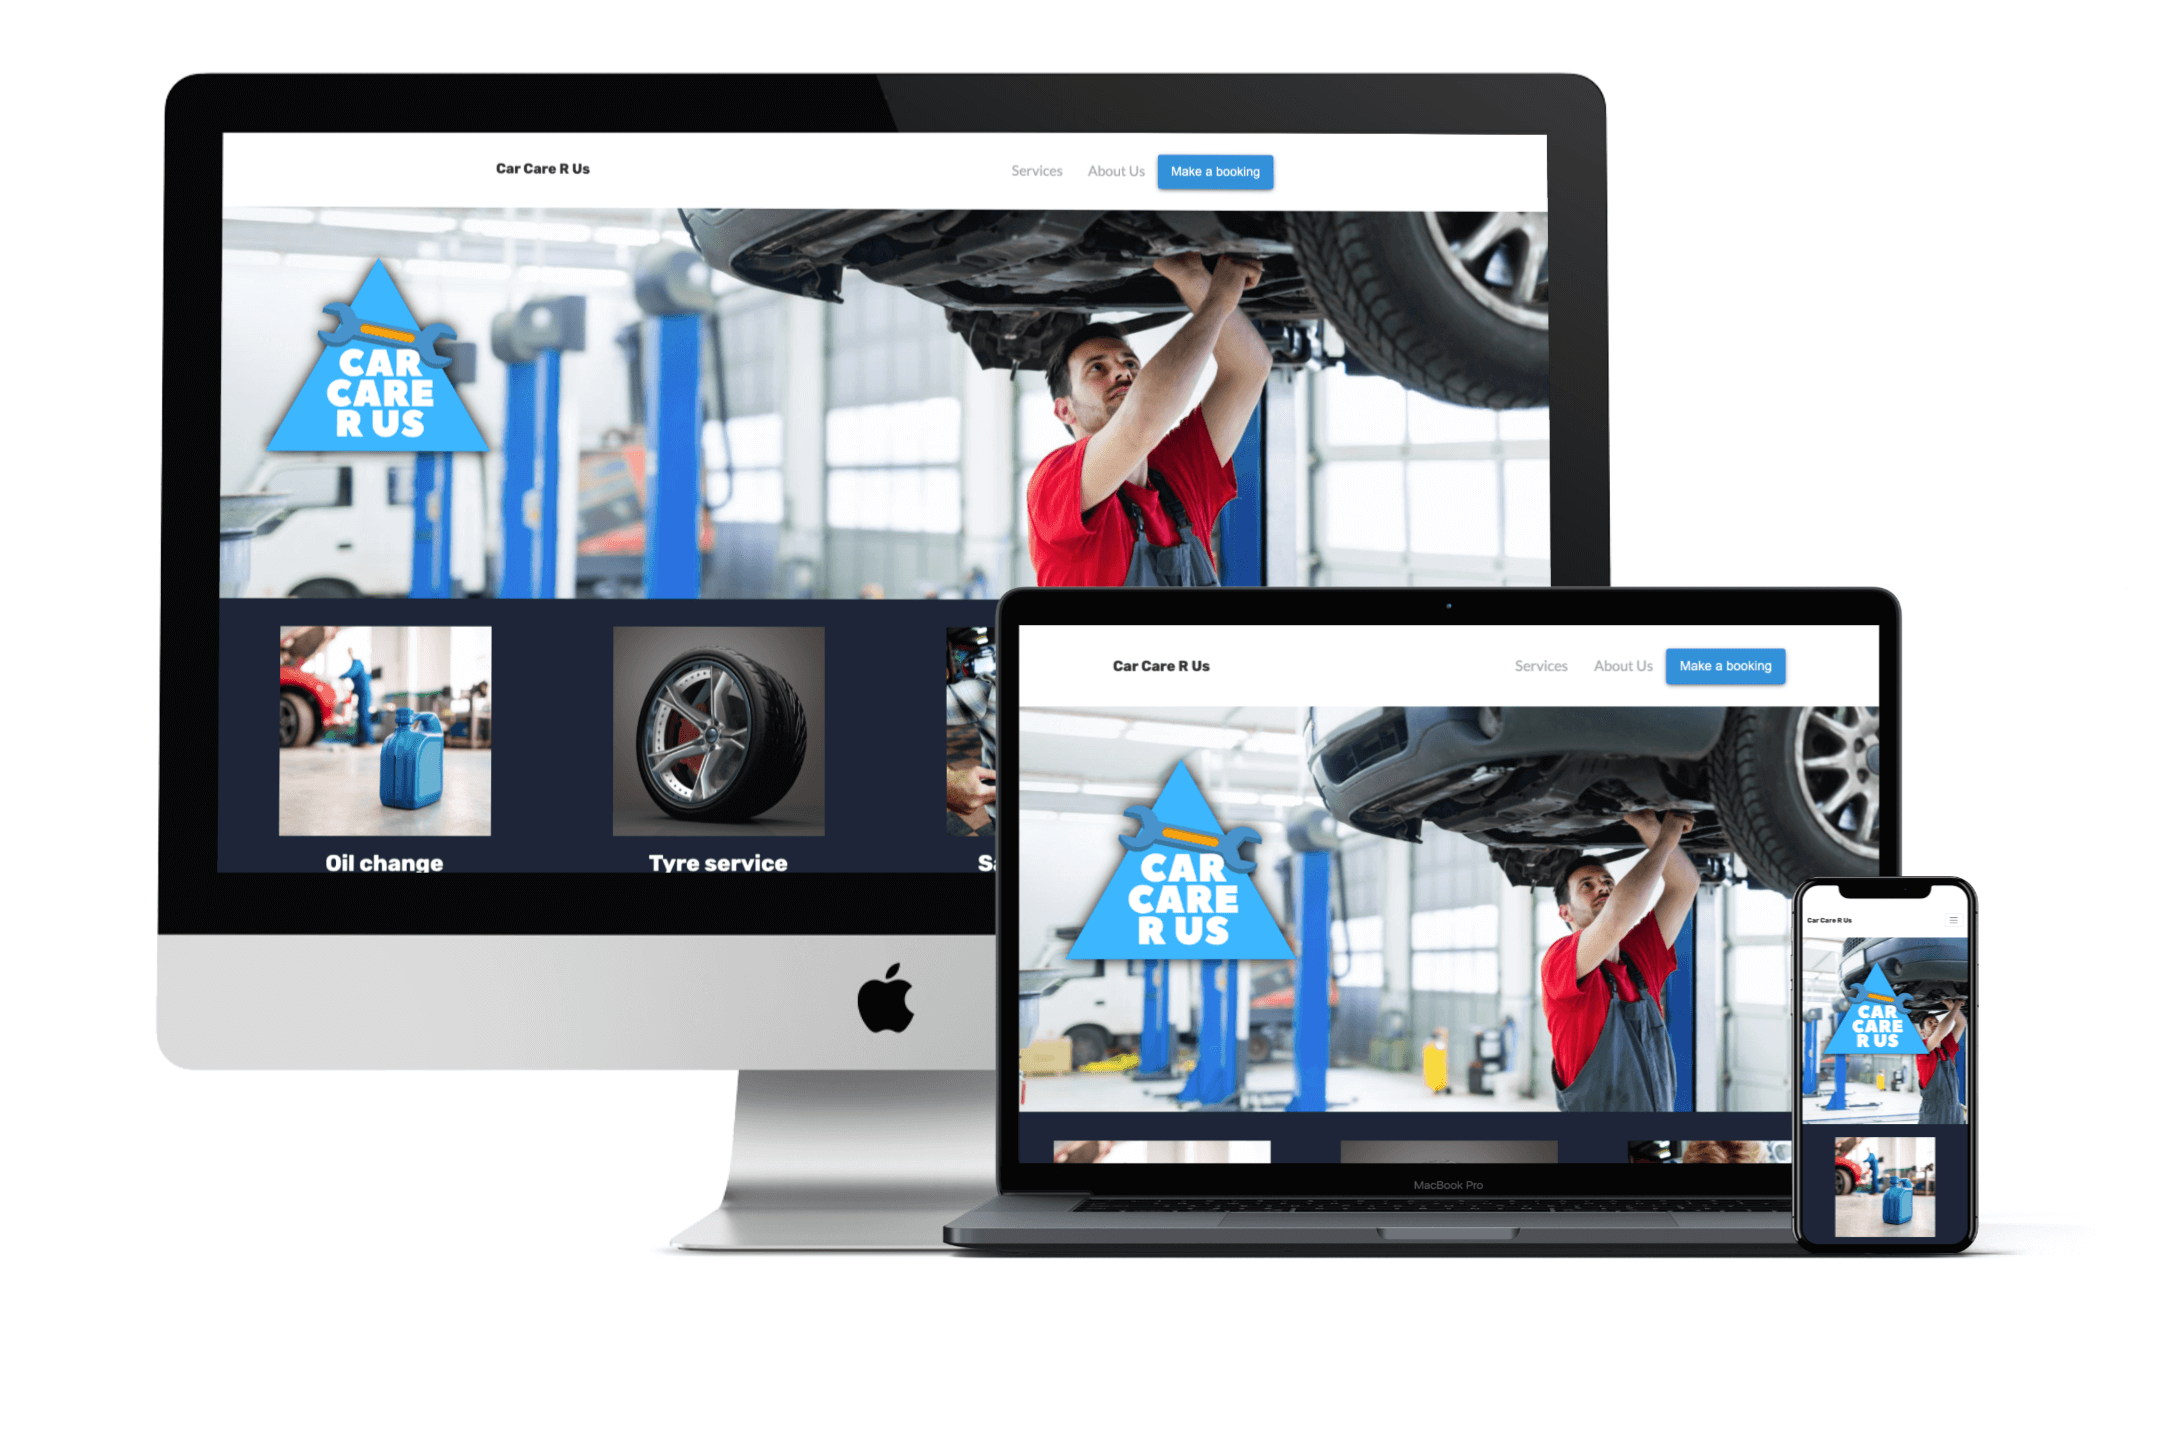 Car Care R Us Website Design